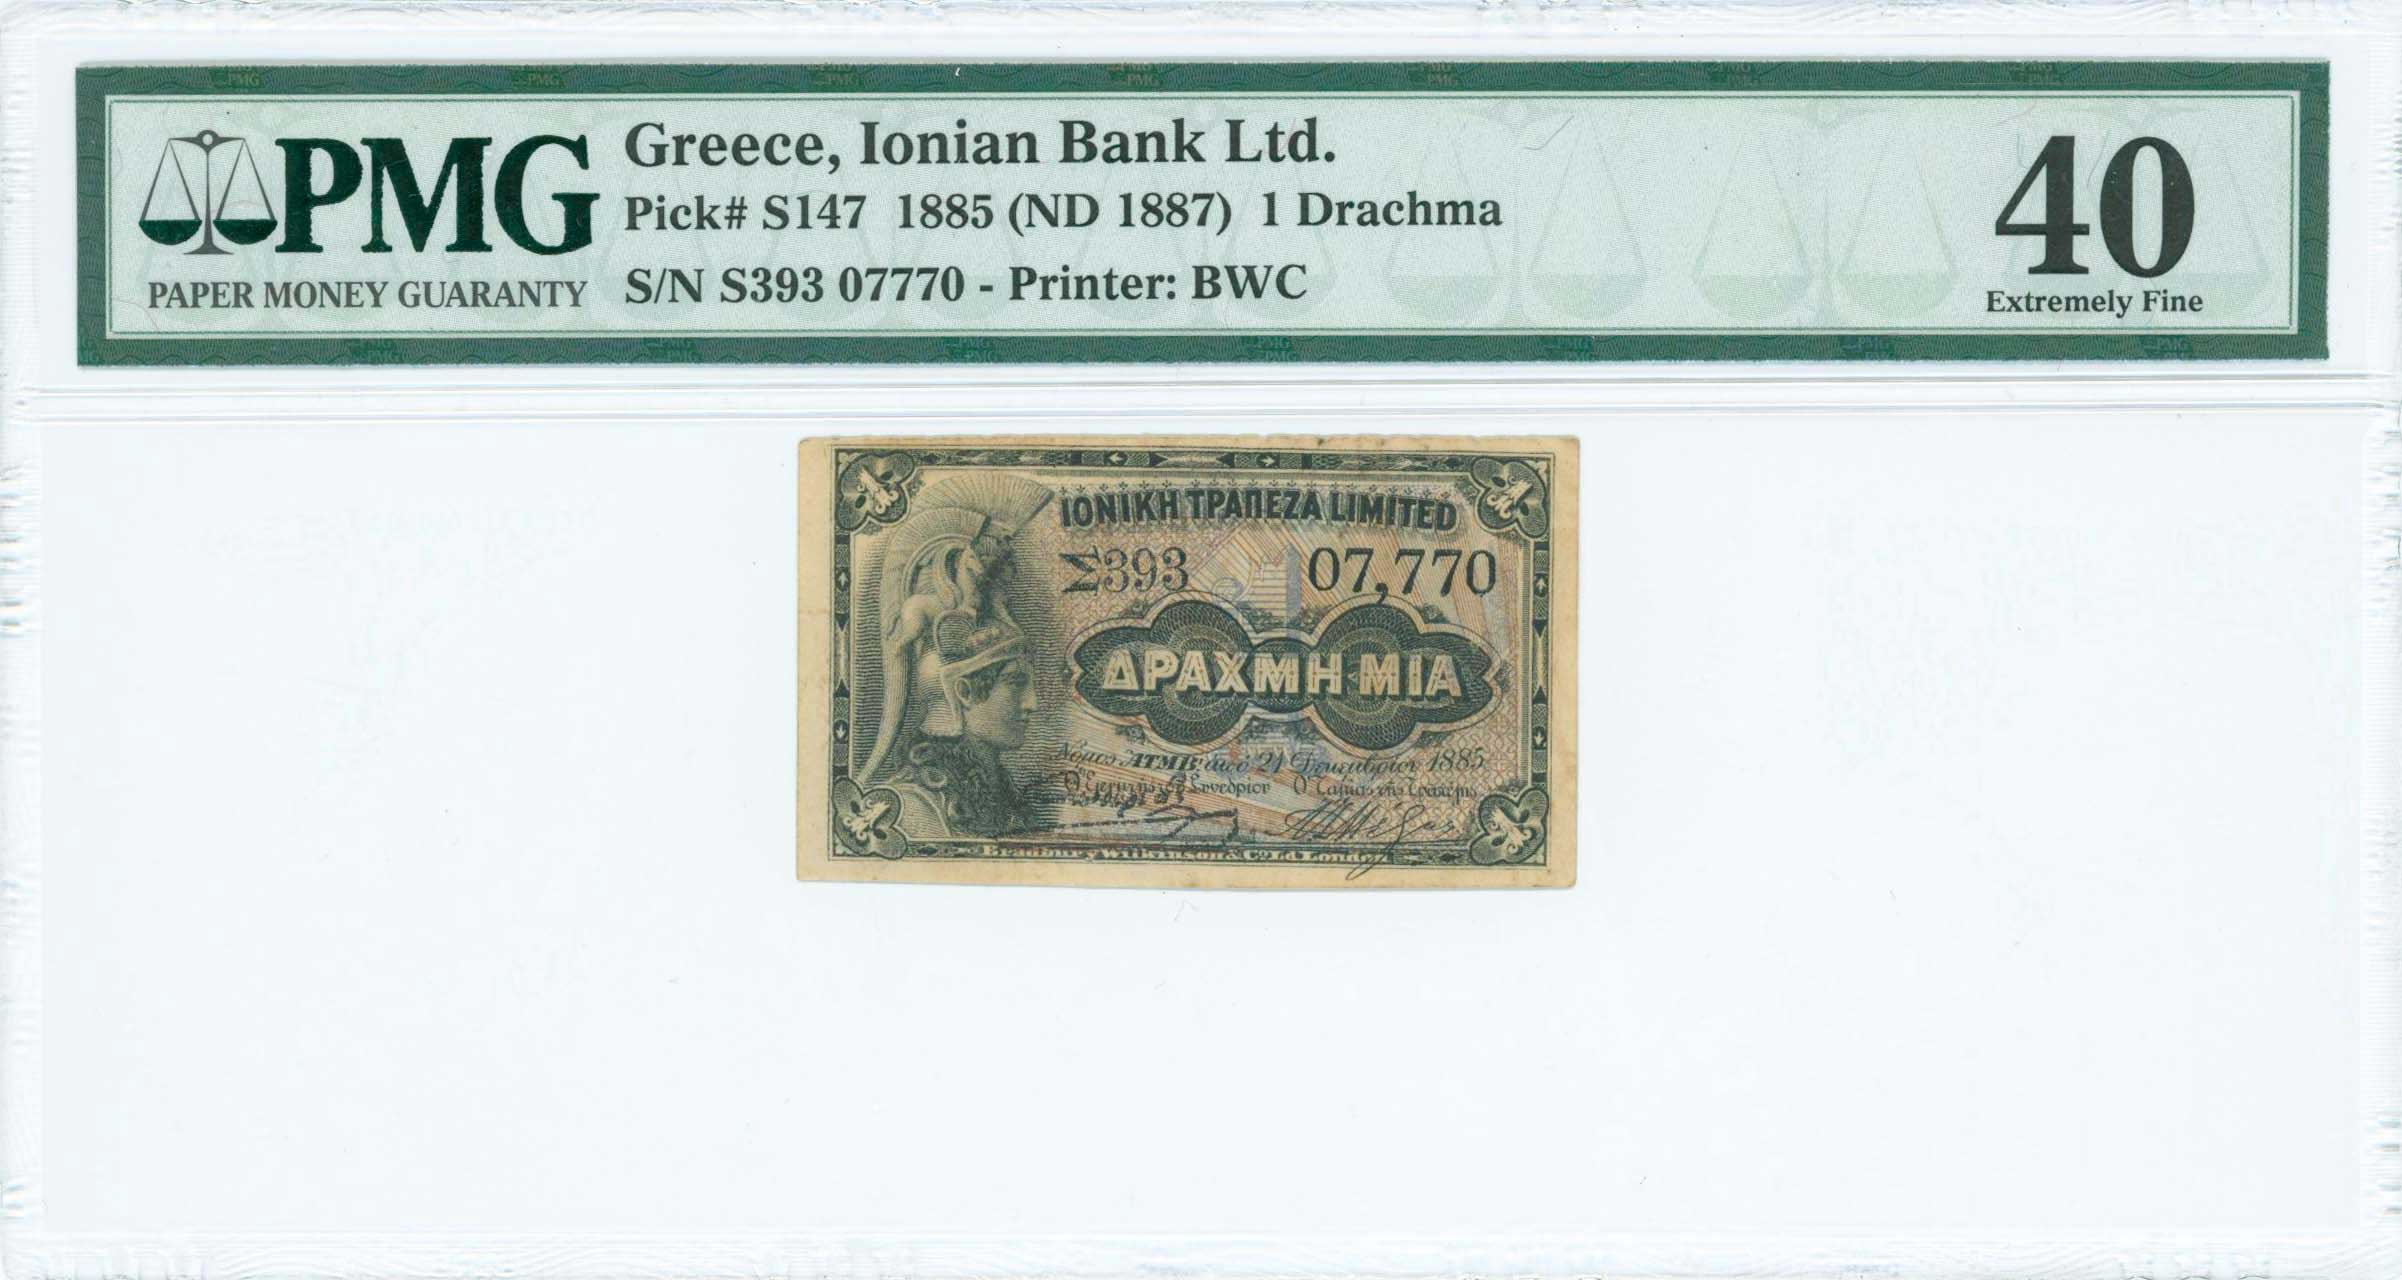 Lot 6442 - -  PAPER MONEY - BANKNOTES ionian bank -  A. Karamitsos Public & Live Internet Auction 671 (Part A)